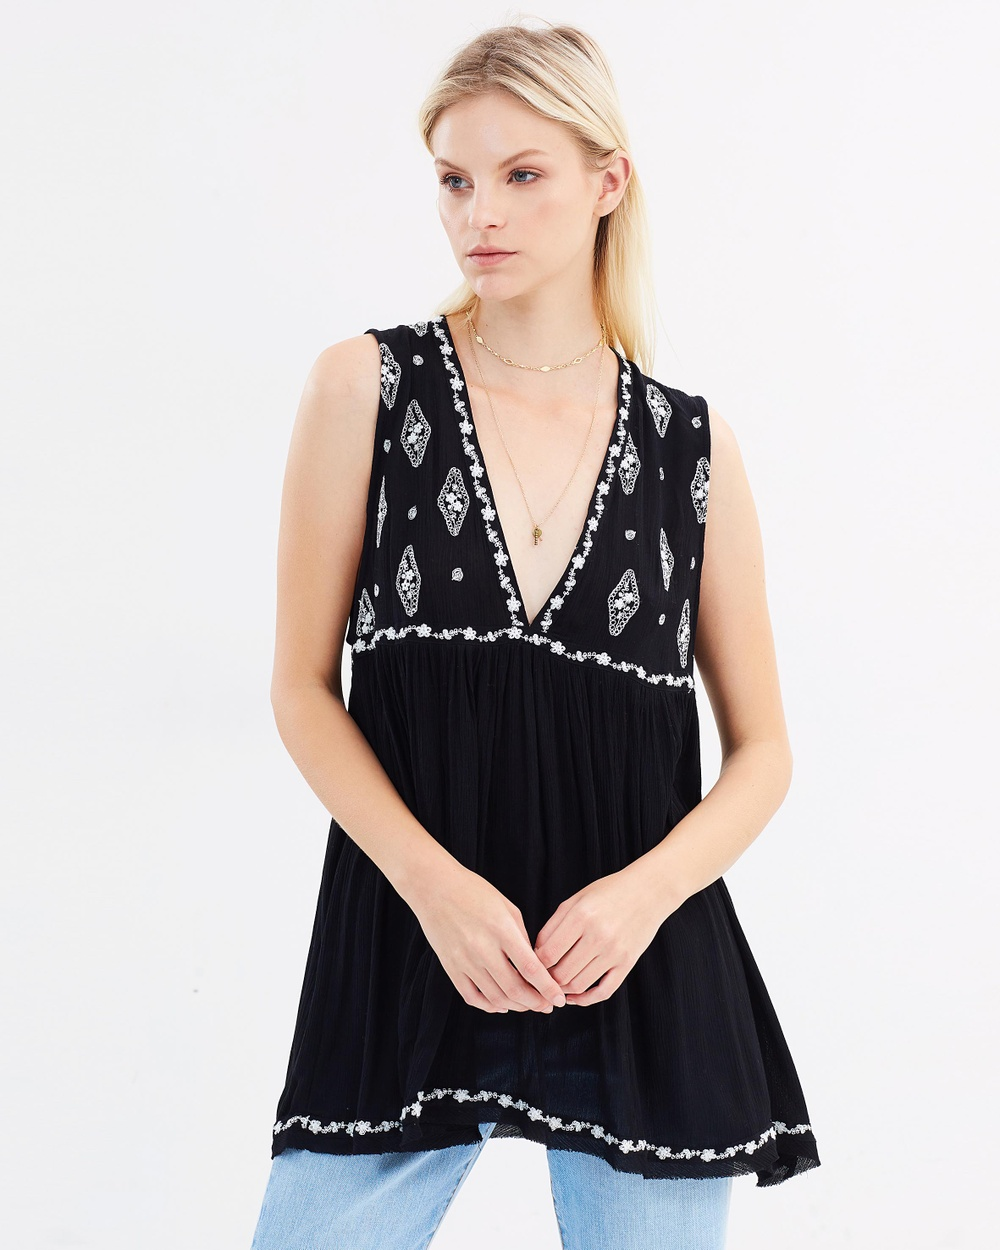 Free People Sleeveless Diamond Embroidered Top Tops Black Sleeveless Diamond Embroidered Top